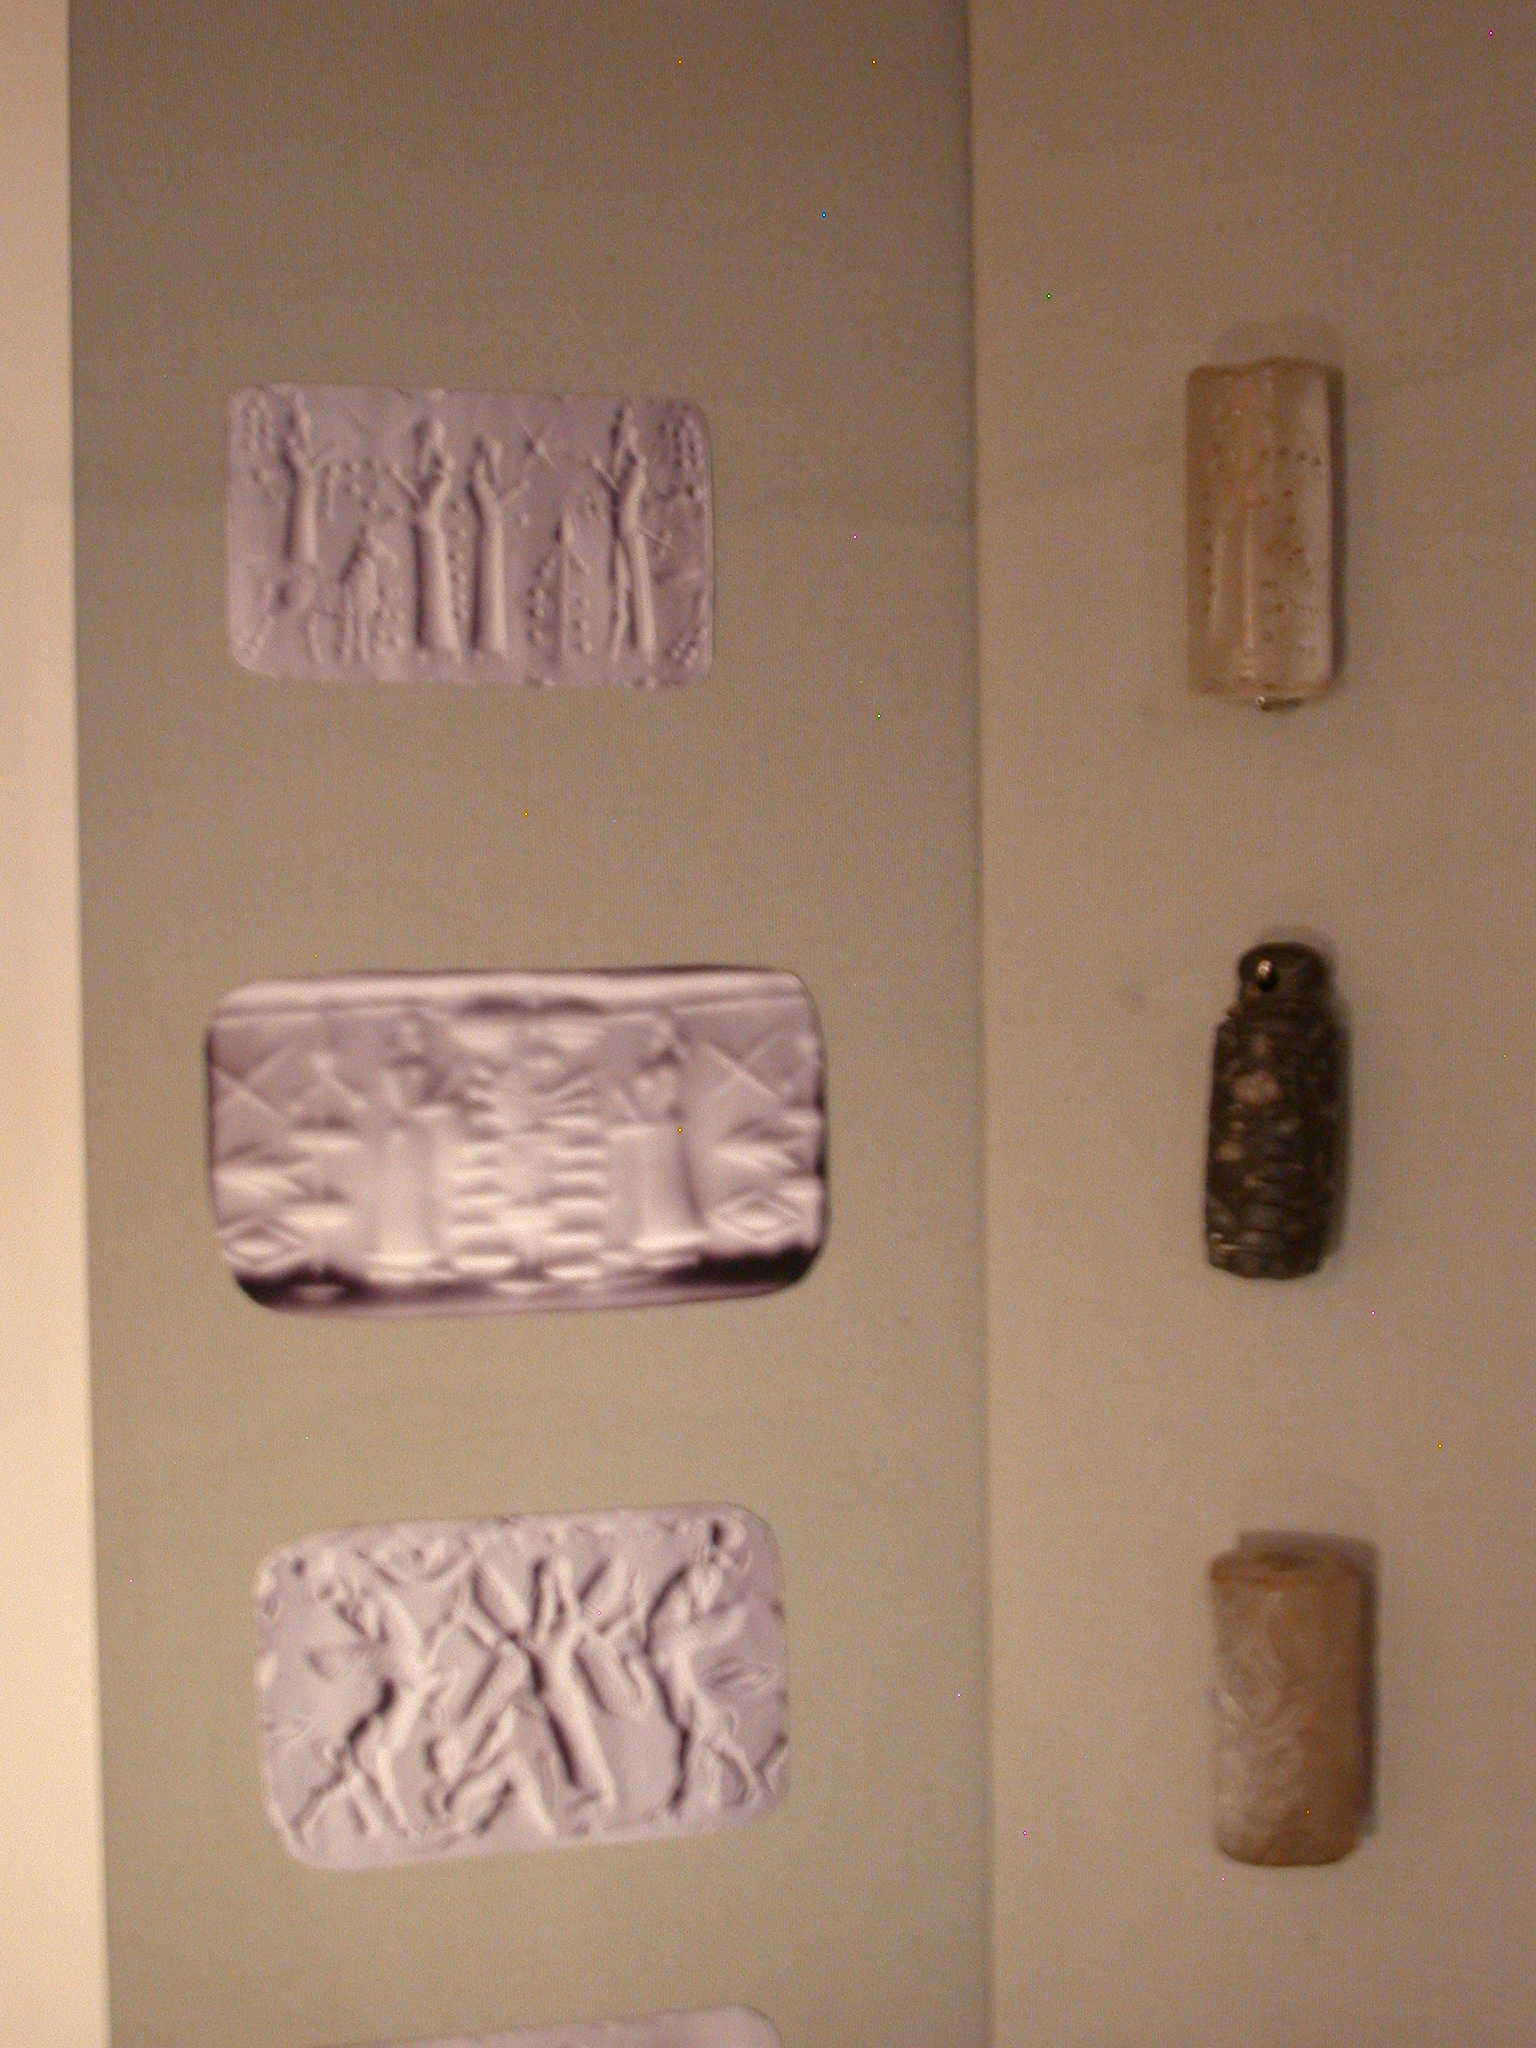 Neo-Assyrian Cylinder Seals, About 950-600 BCE, in Fitzwilliam Museum, Cambridge, England